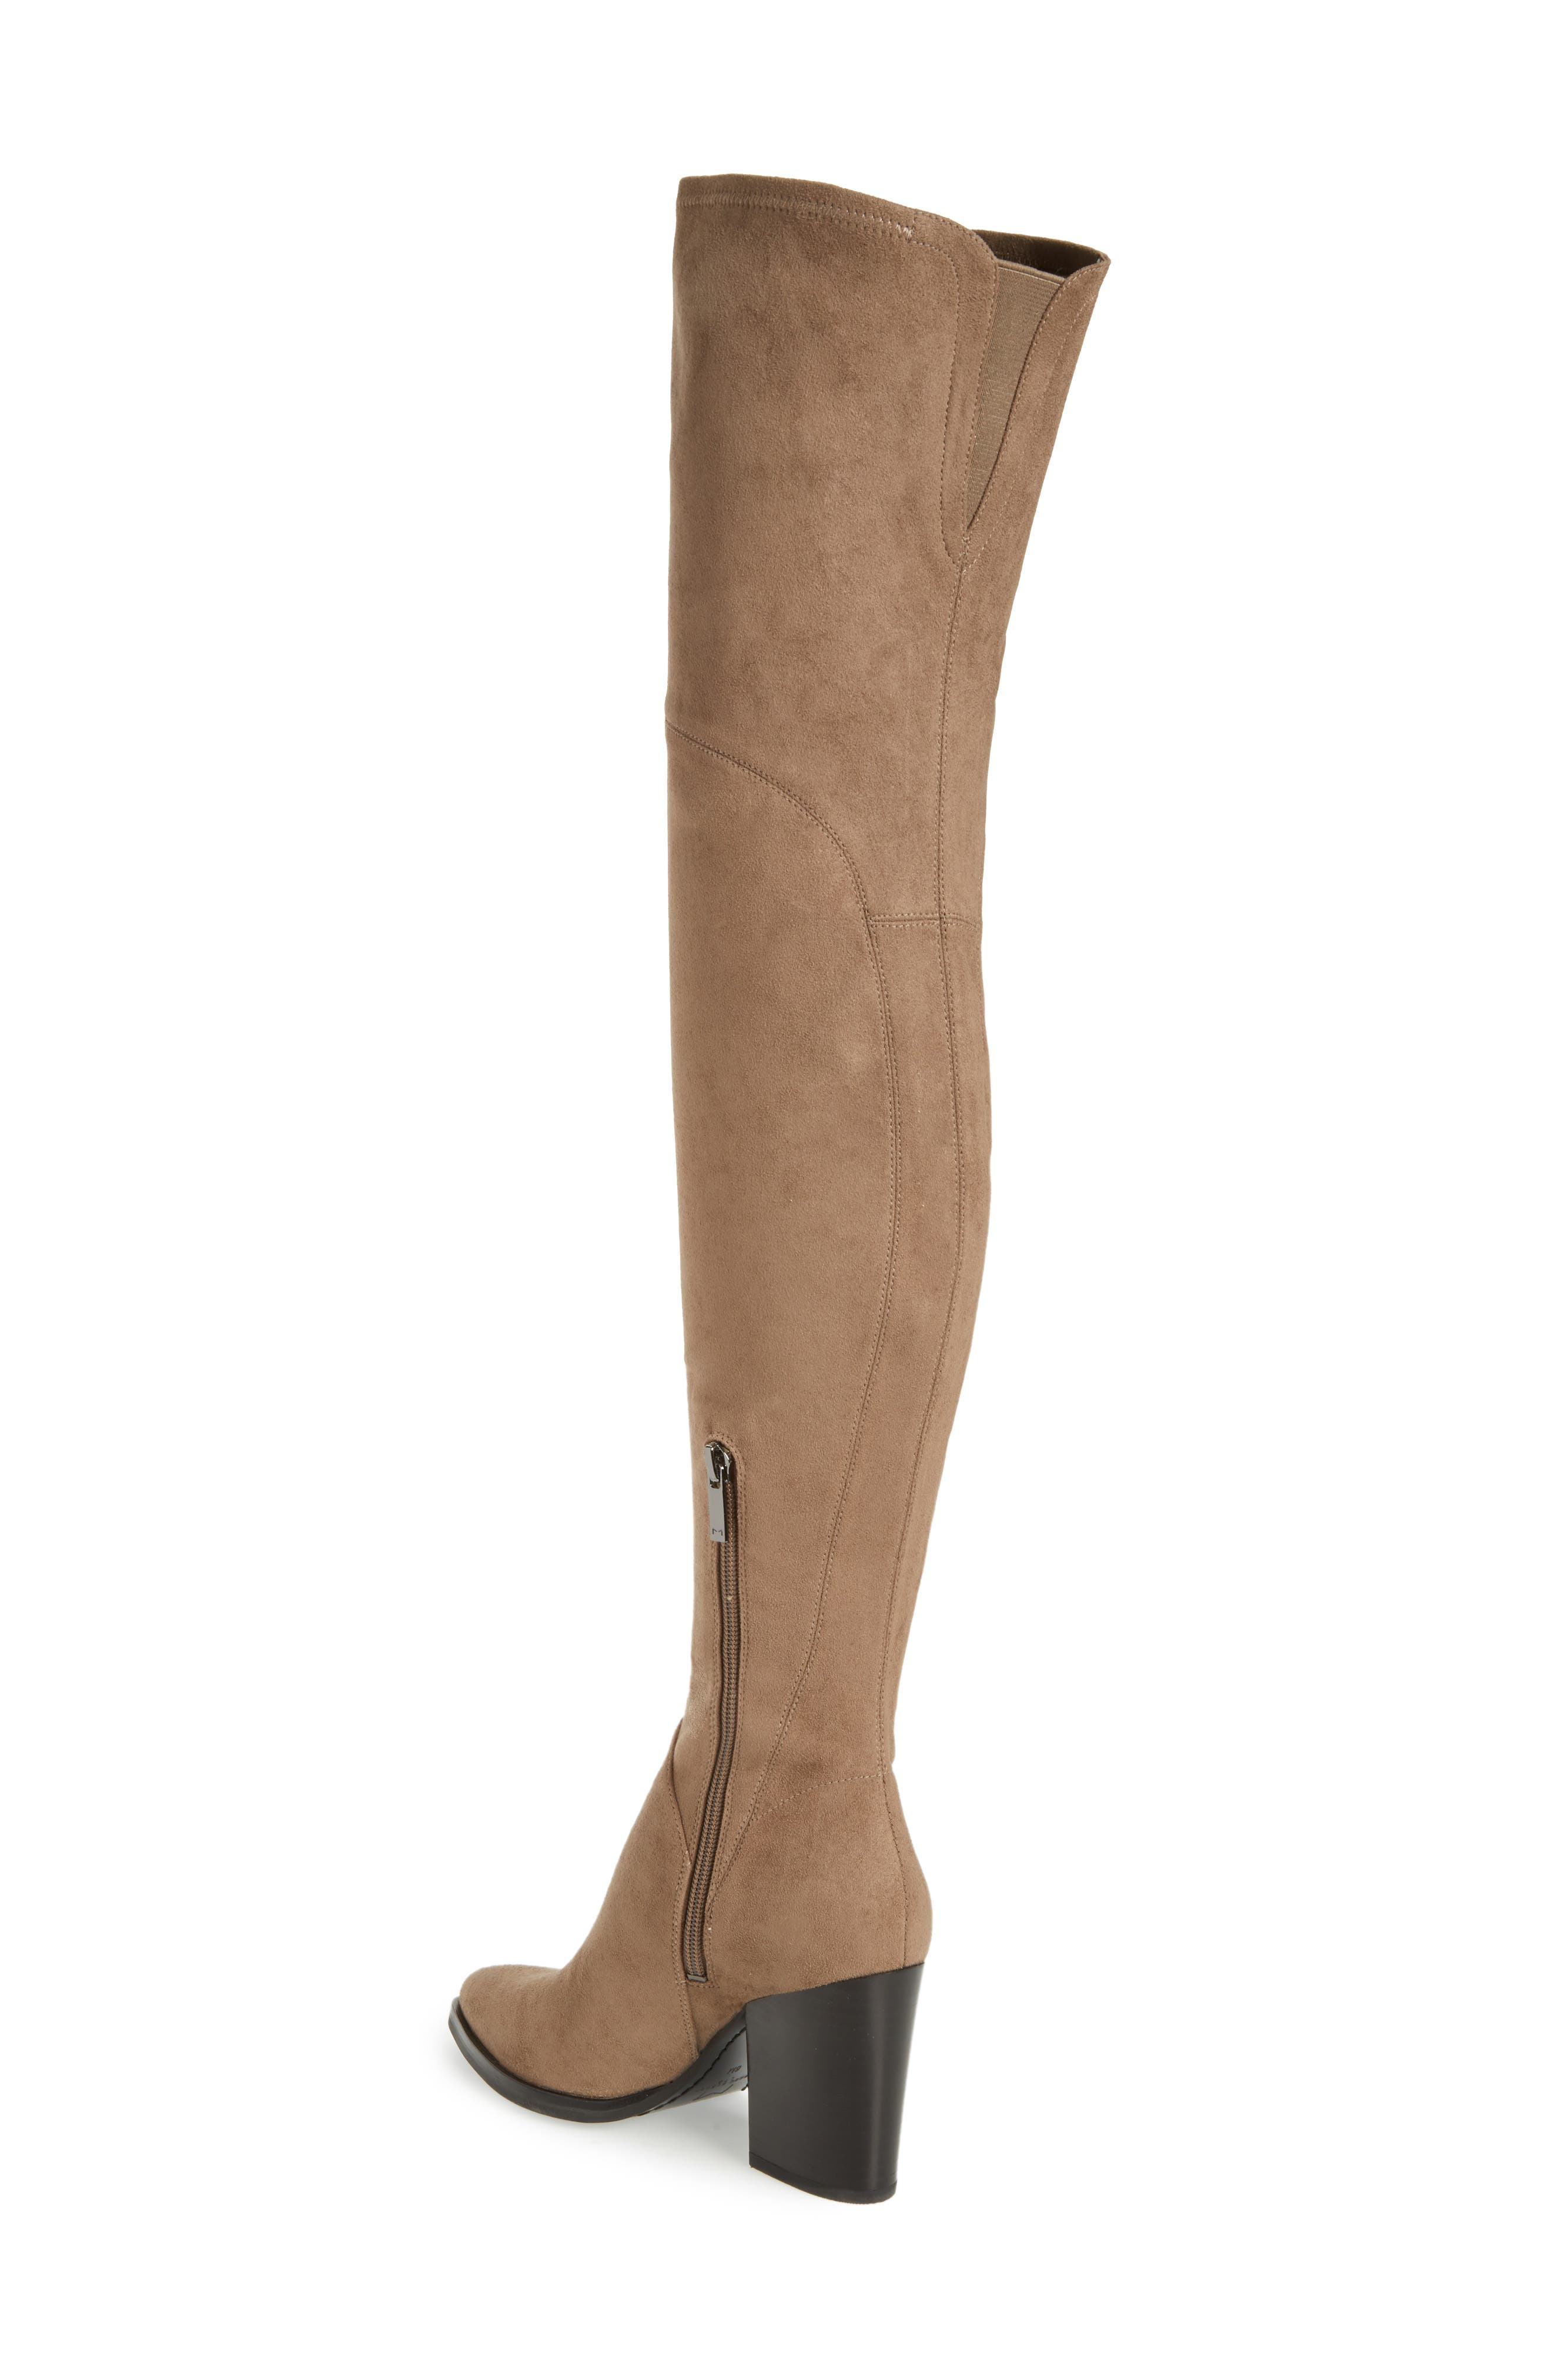 Arrine Over the Knee Boot,                             Alternate thumbnail 2, color,                             250